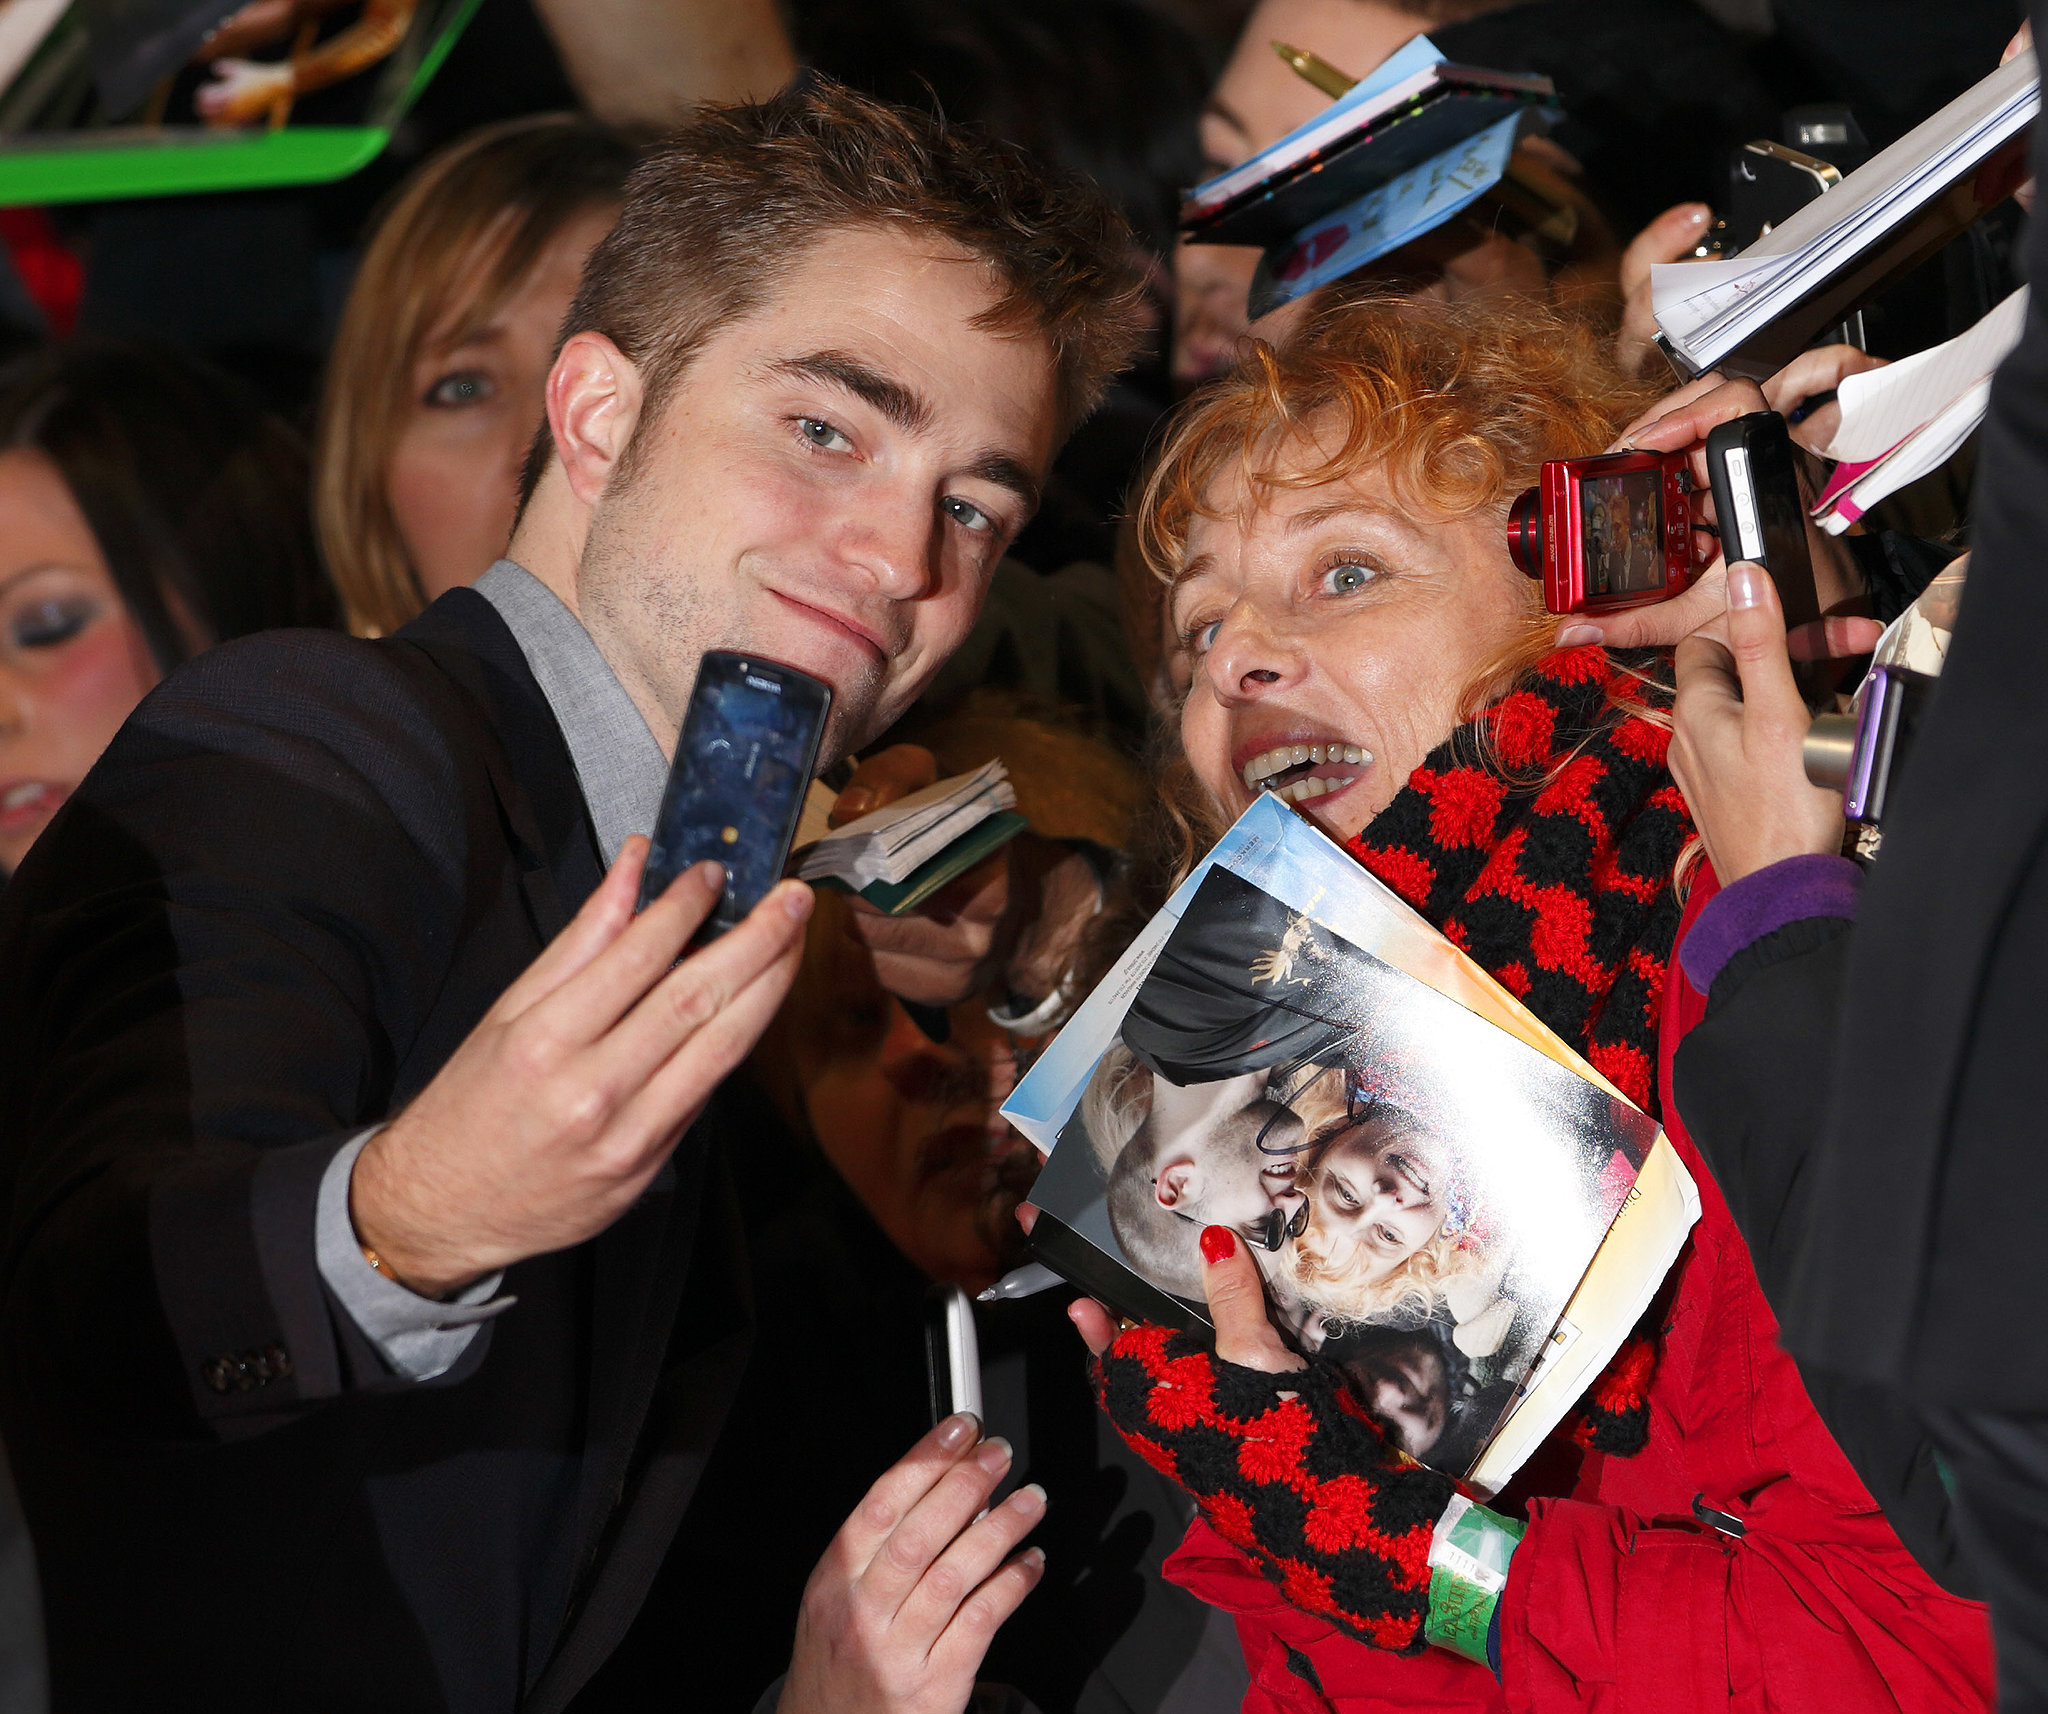 Robert Pattinson smiled with a fan in November 2012 before heading into the London premiere of Breaking Dawn Part 2.